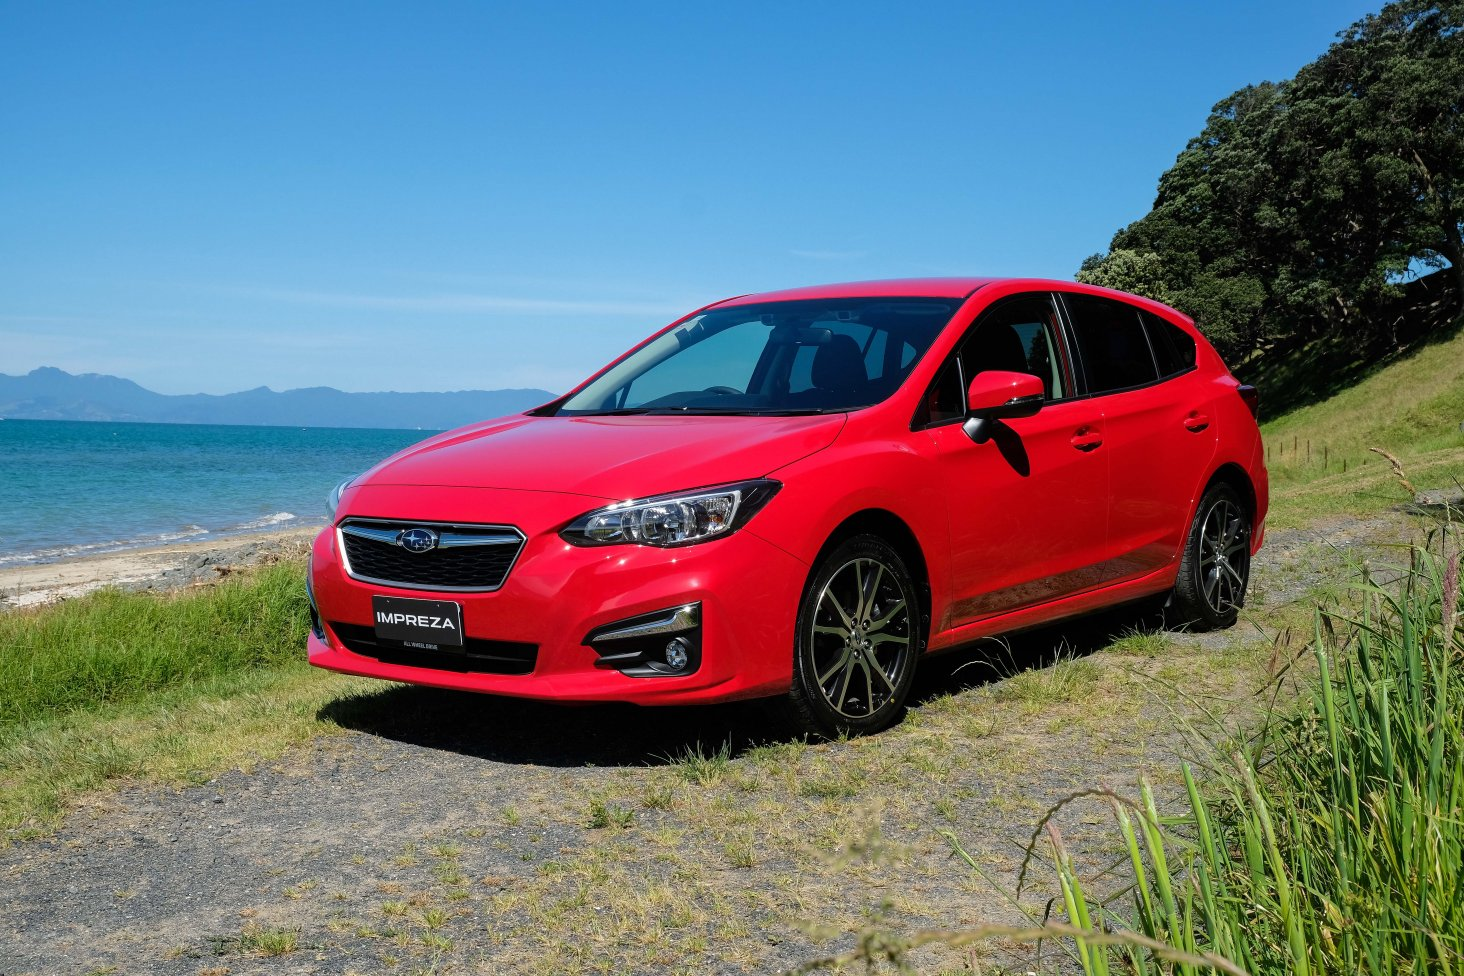 The Impreza 2.0 Sport is available in New Zealand's Subaru Authorised Dealerships.